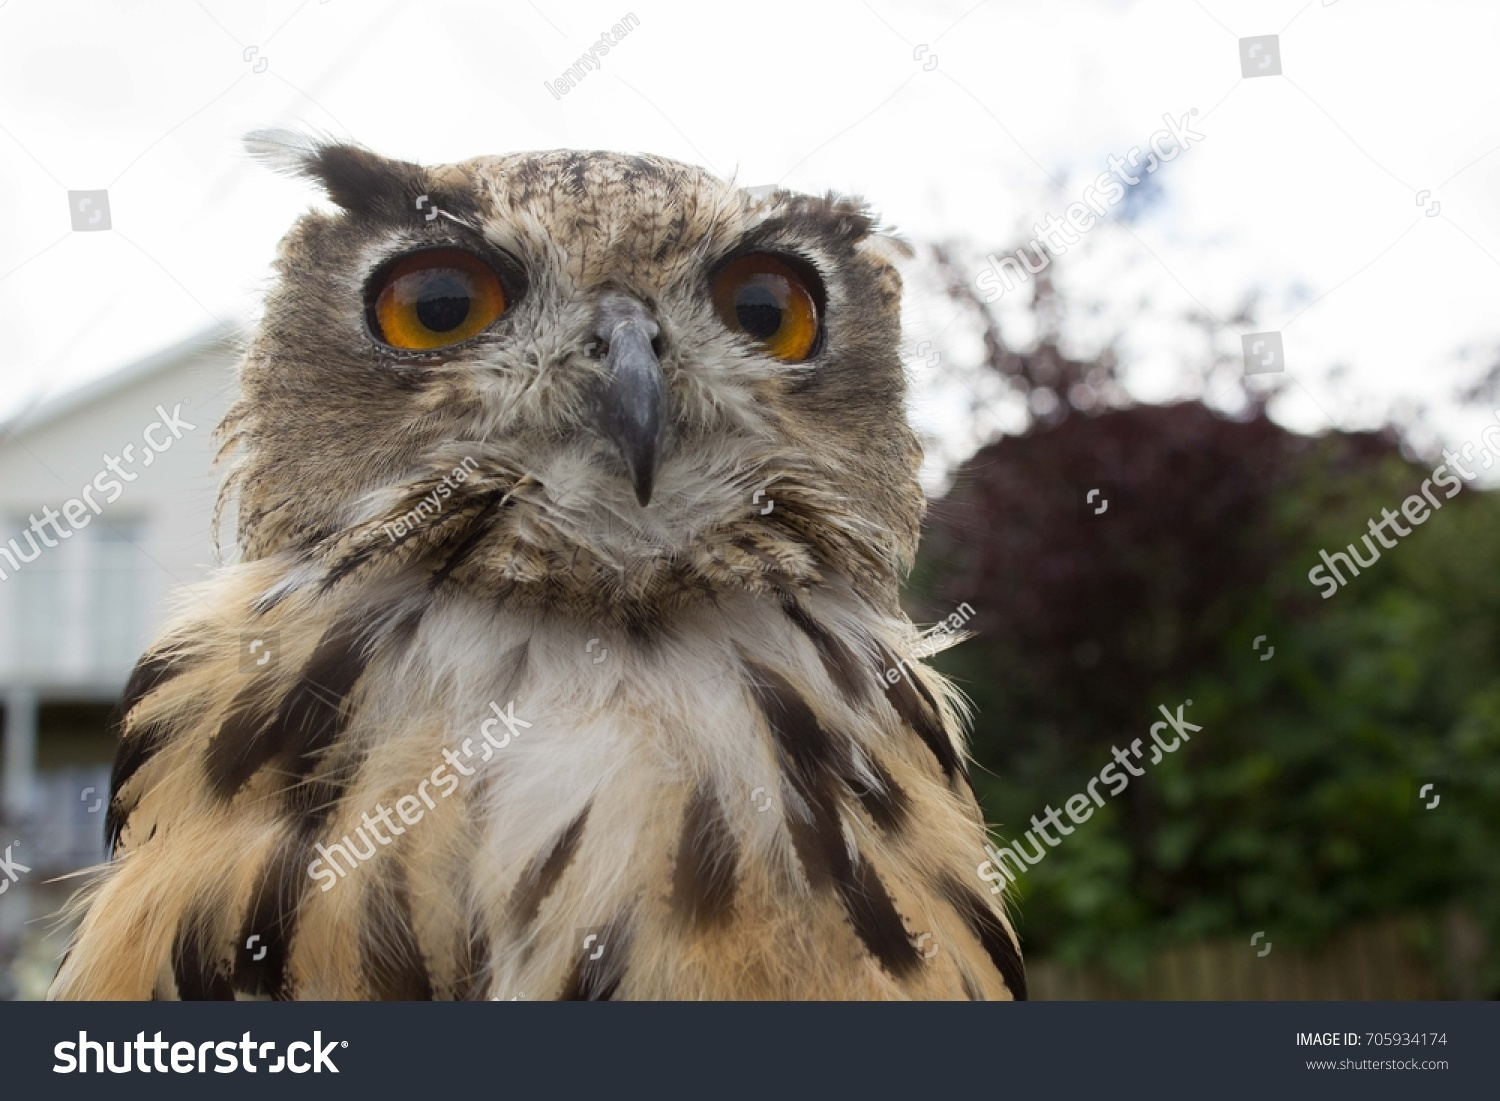 European Eagle Owl (Bubo Bubo), loot at the bird's face from the bottom